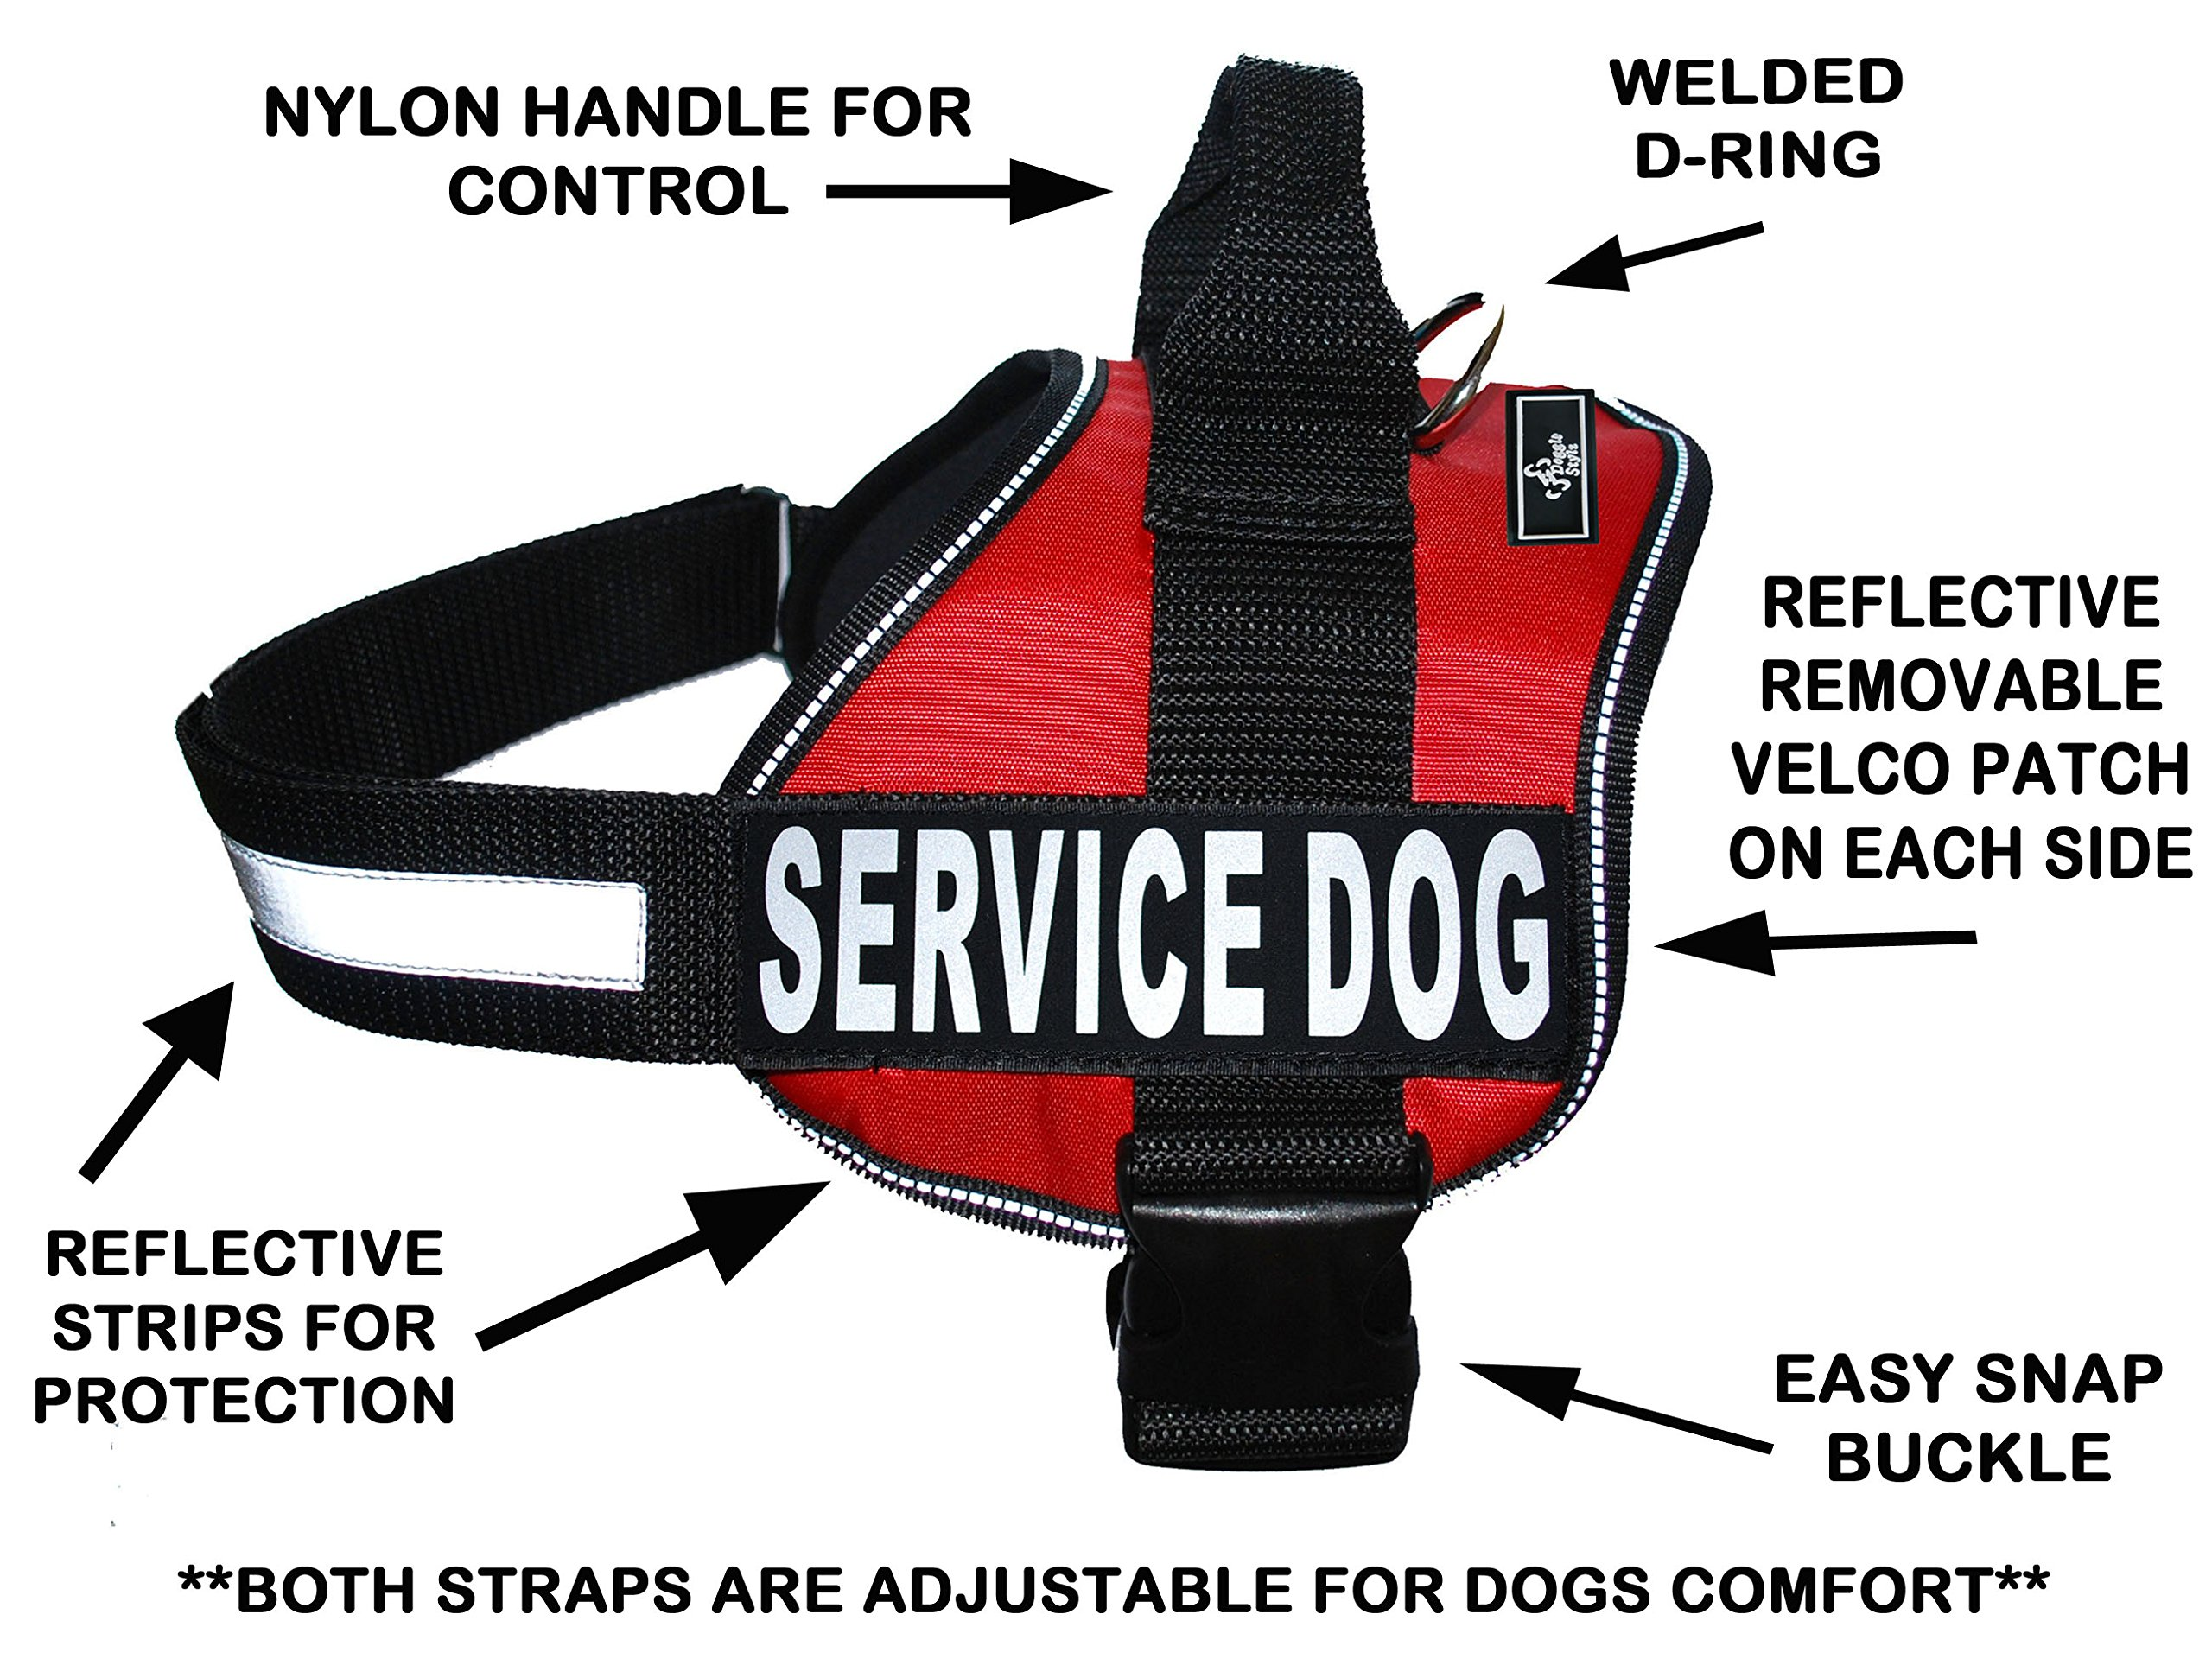 Service Dog Harness Vest Comes 2 Reflective Service Dog Velcro Patches. Please Measure Dog Before Ordering (Girth 12-16'', Red)